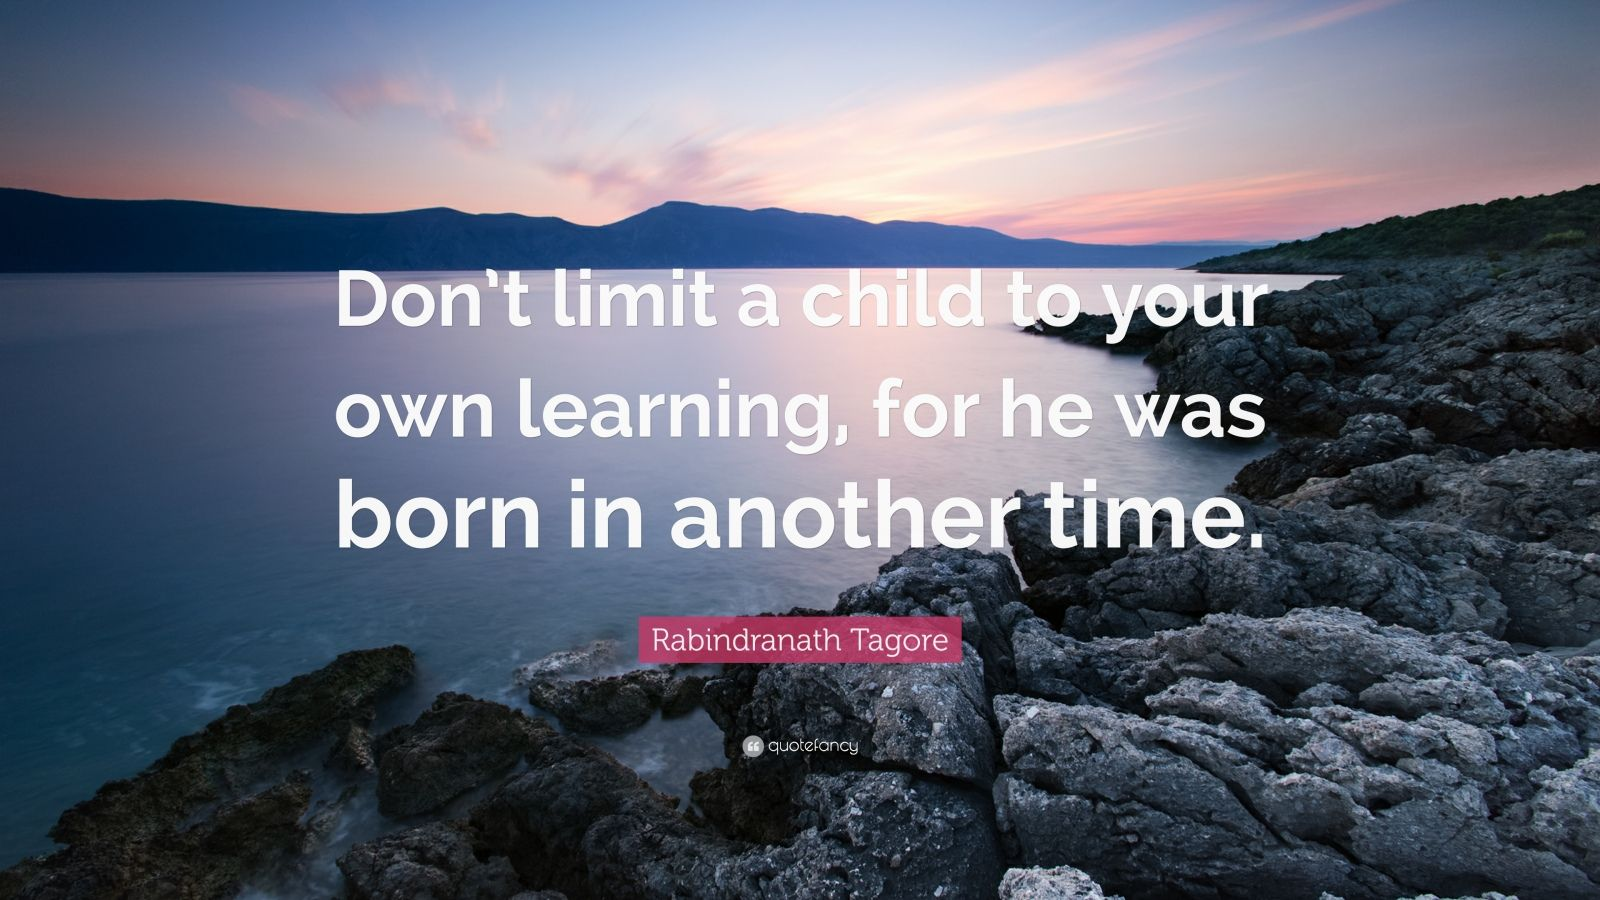 """Rabindranath Tagore Quote: """"Don't limit a child to your own learning, for he was born in another time."""""""